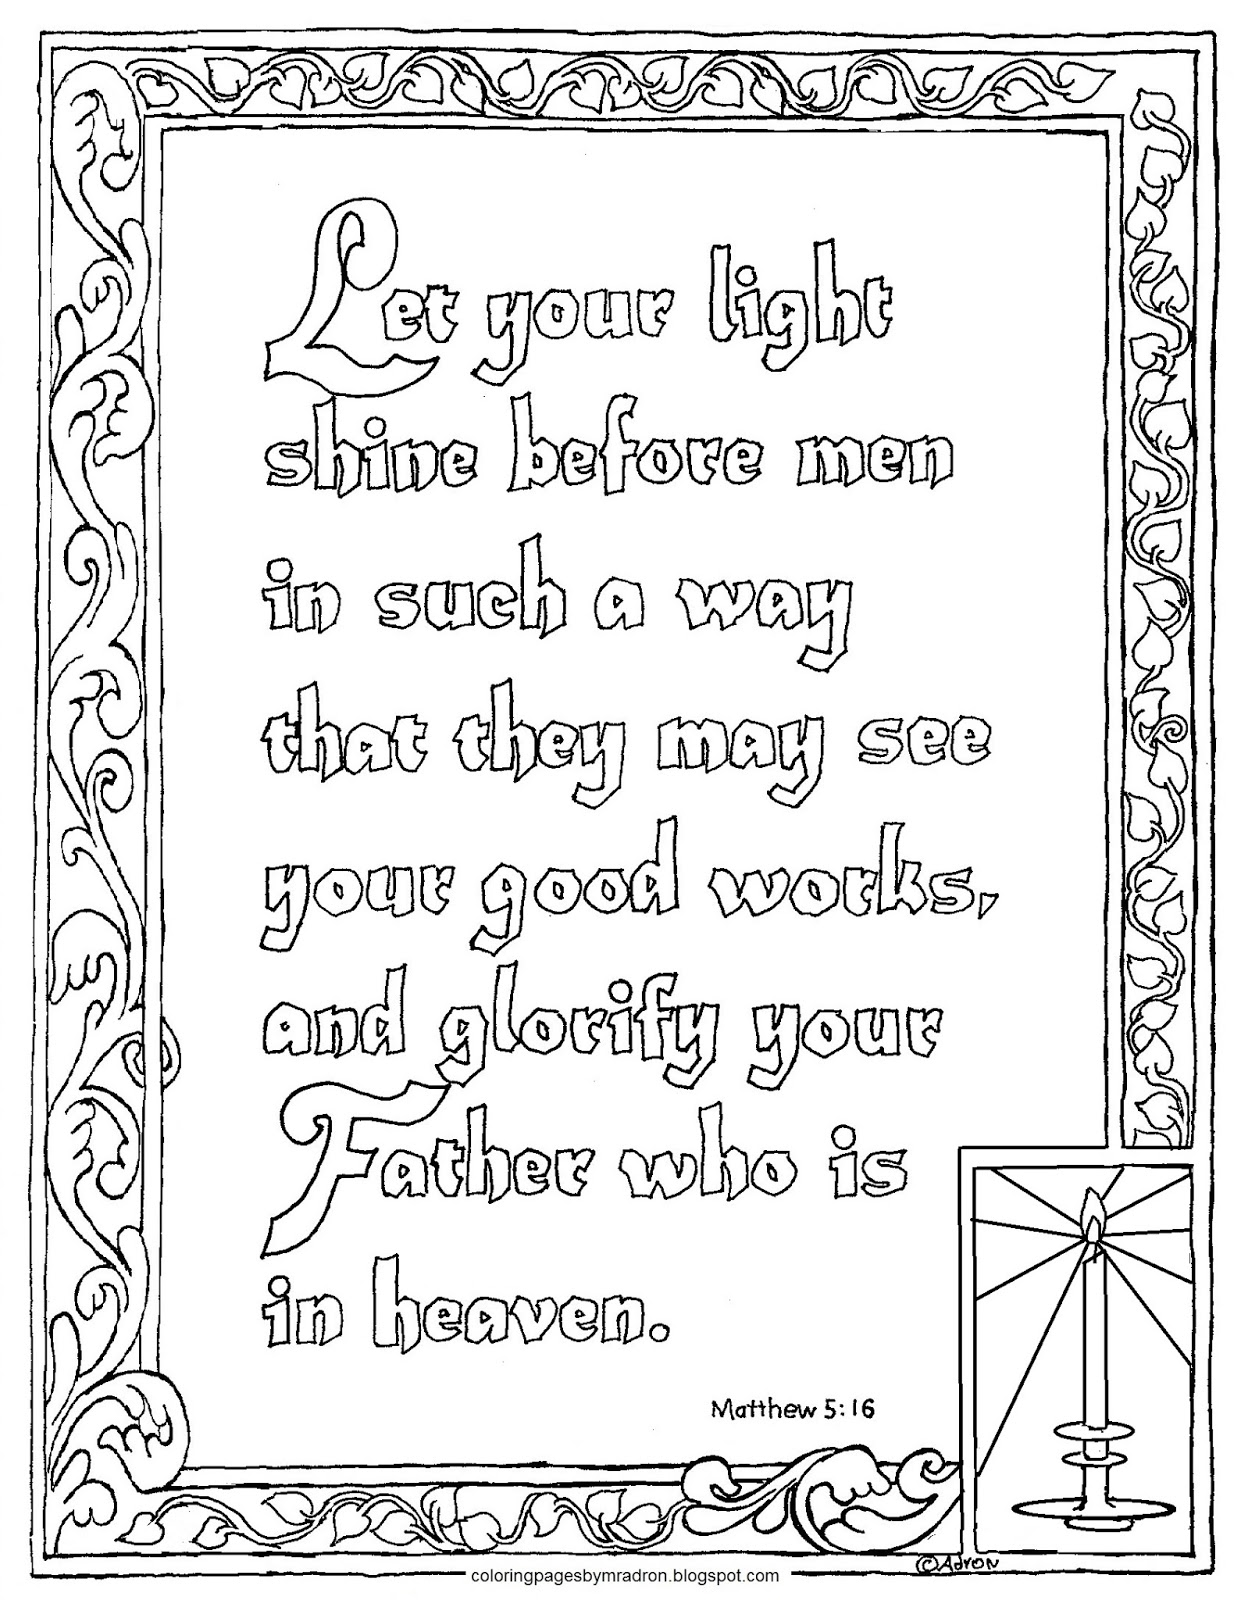 Coloring Pages for Kids by Mr. Adron: Printable Matthew 25:25, Let